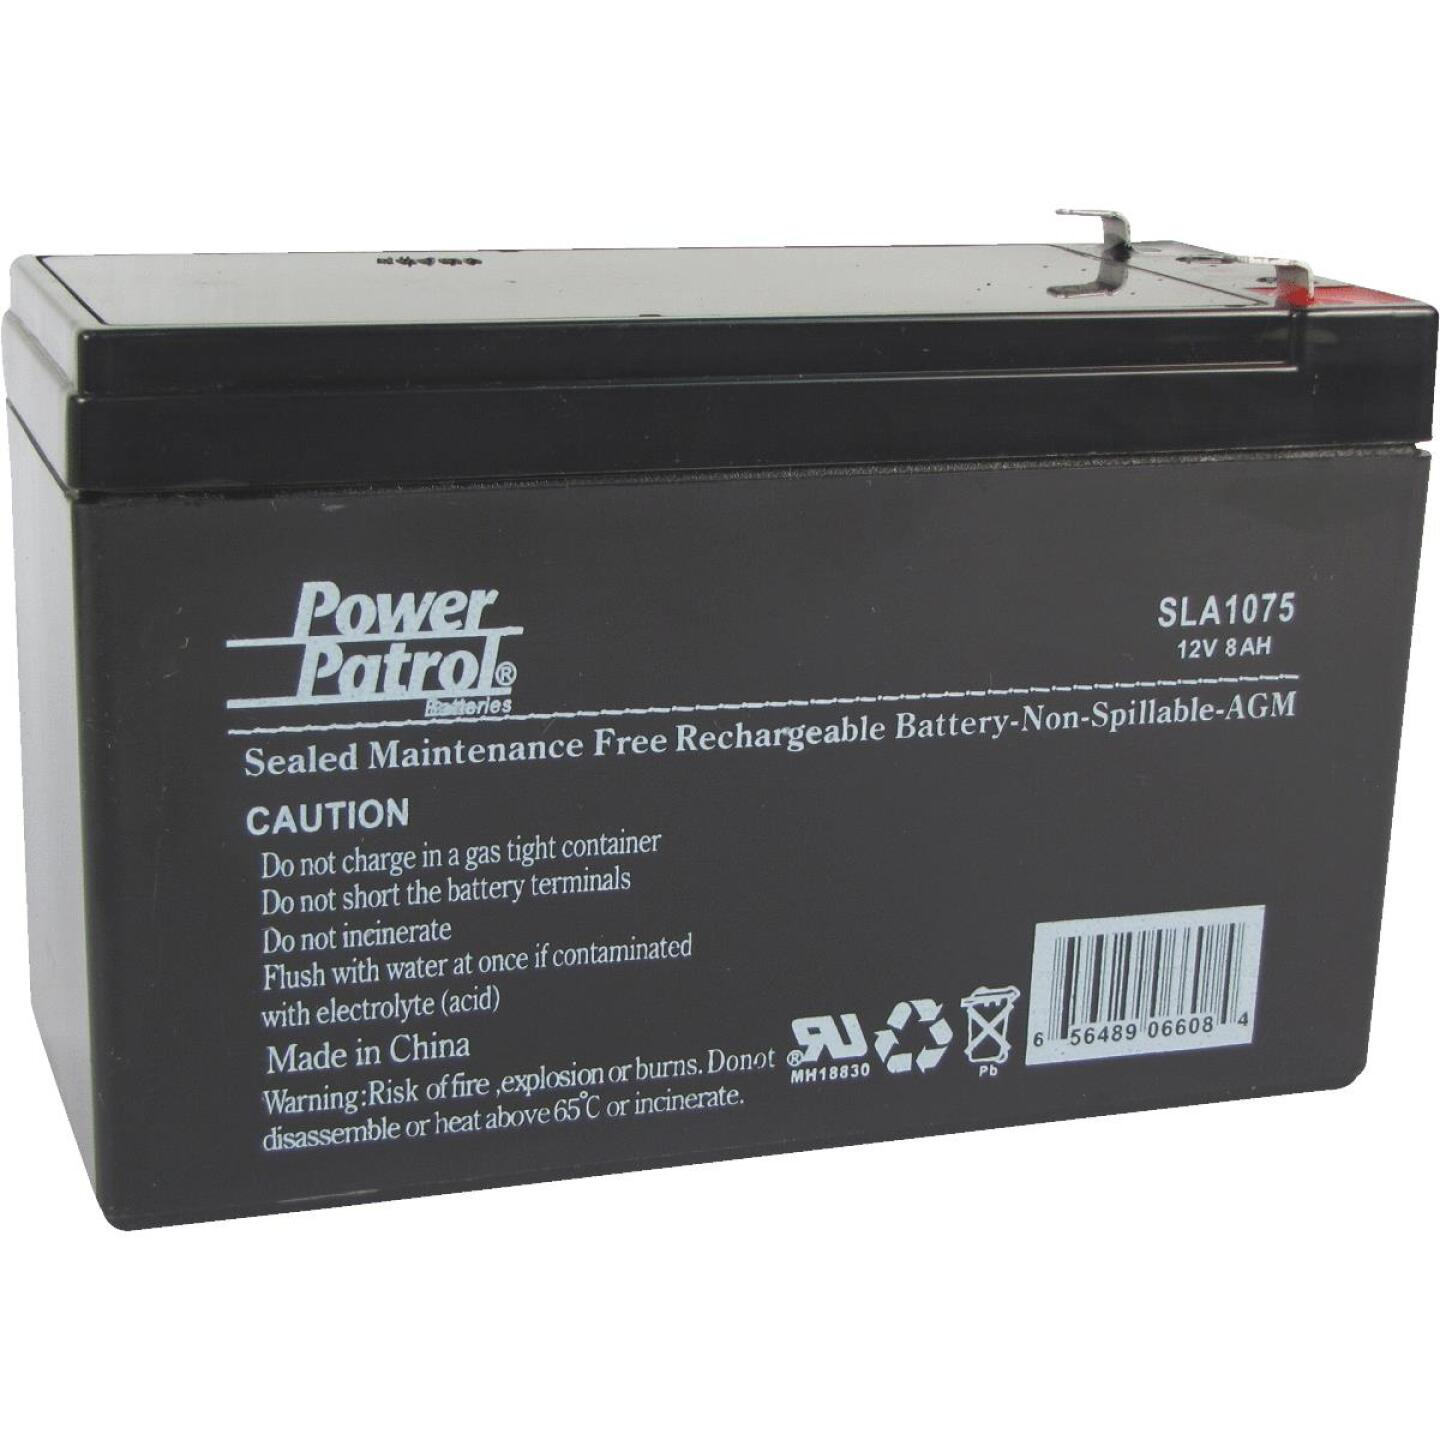 Interstate All Battery Power Patrol 12V 8A Security System Battery Image 1